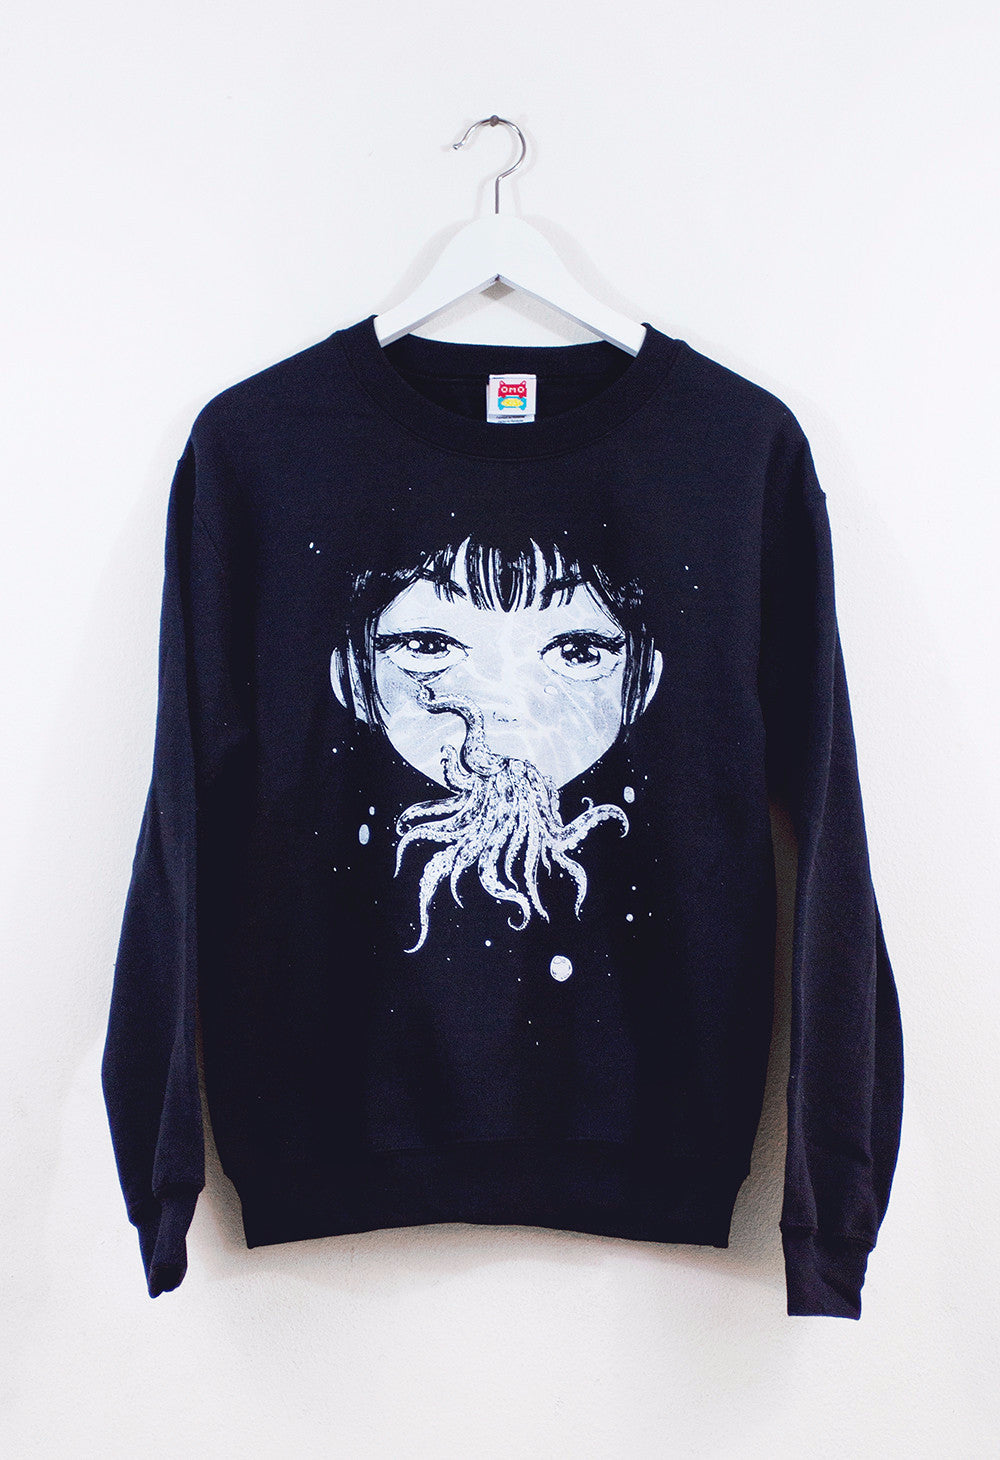 TENTACLES Sweater